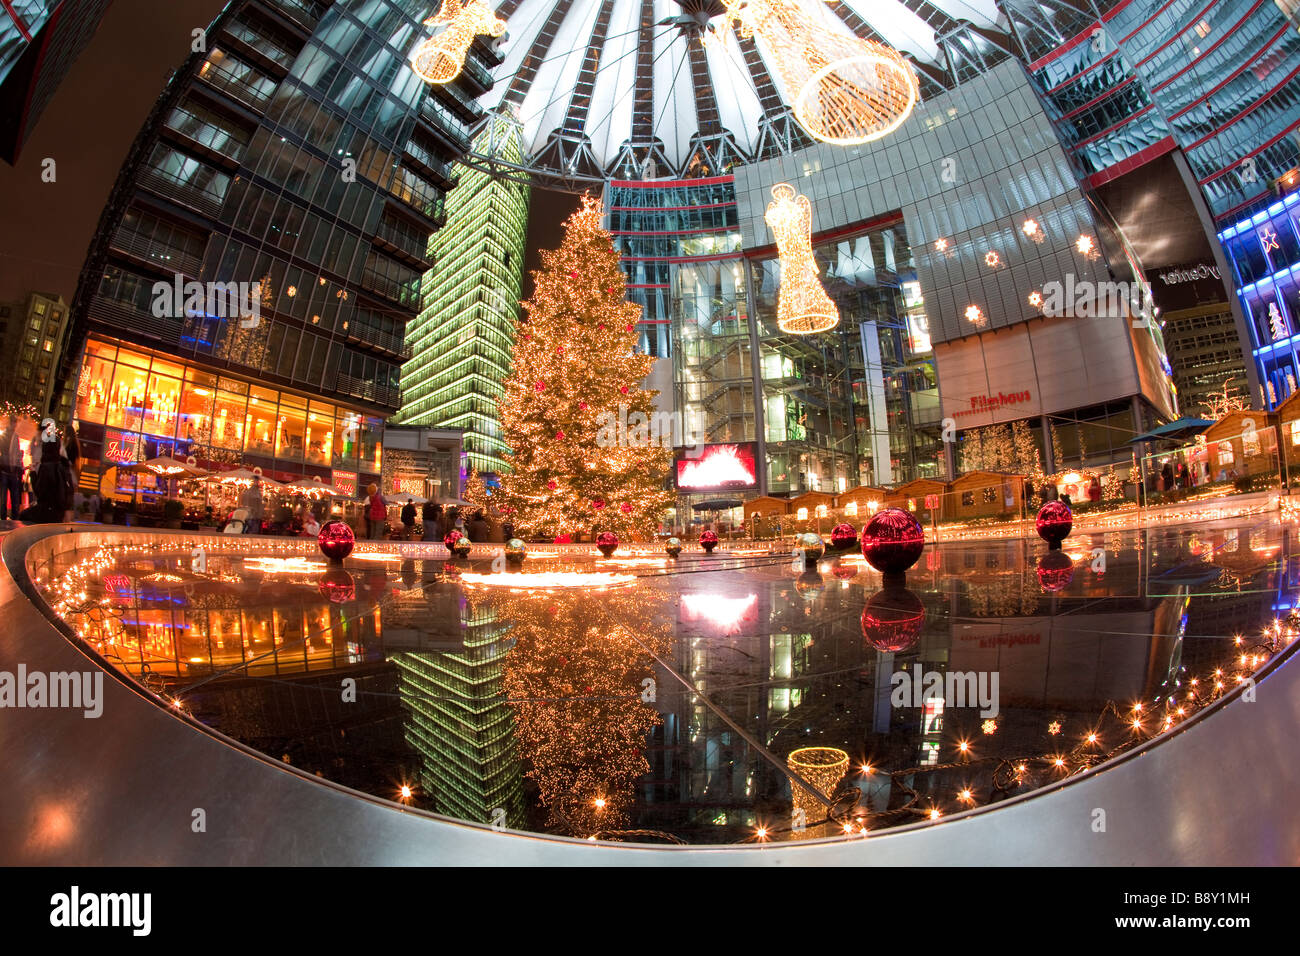 Sony Center at Christmas Potsdamer Platz Berlin Germany - Stock Image